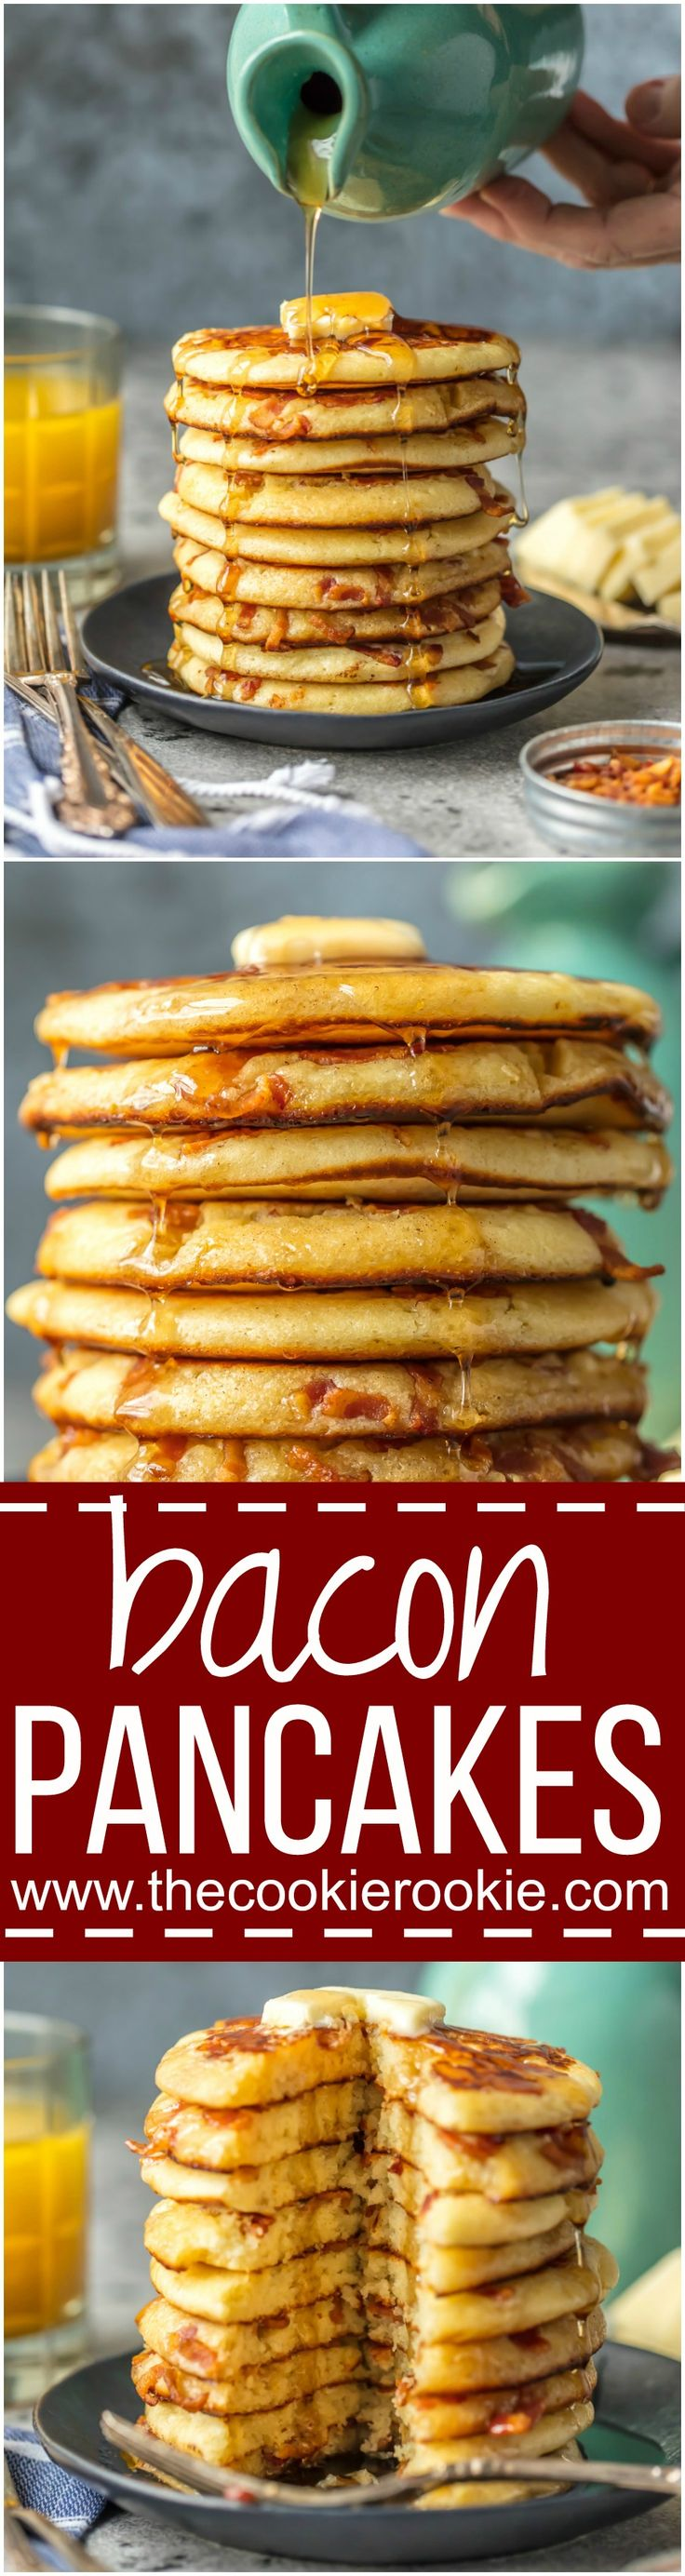 These BACON PANCAKES have been a family favorite for years! We first had these savory pancakes stuffed with bacon bits at the Calgary Stampede in Canada and have been making them ever since. The savory/sweet combo just can't be beat! via @beckygallhardin